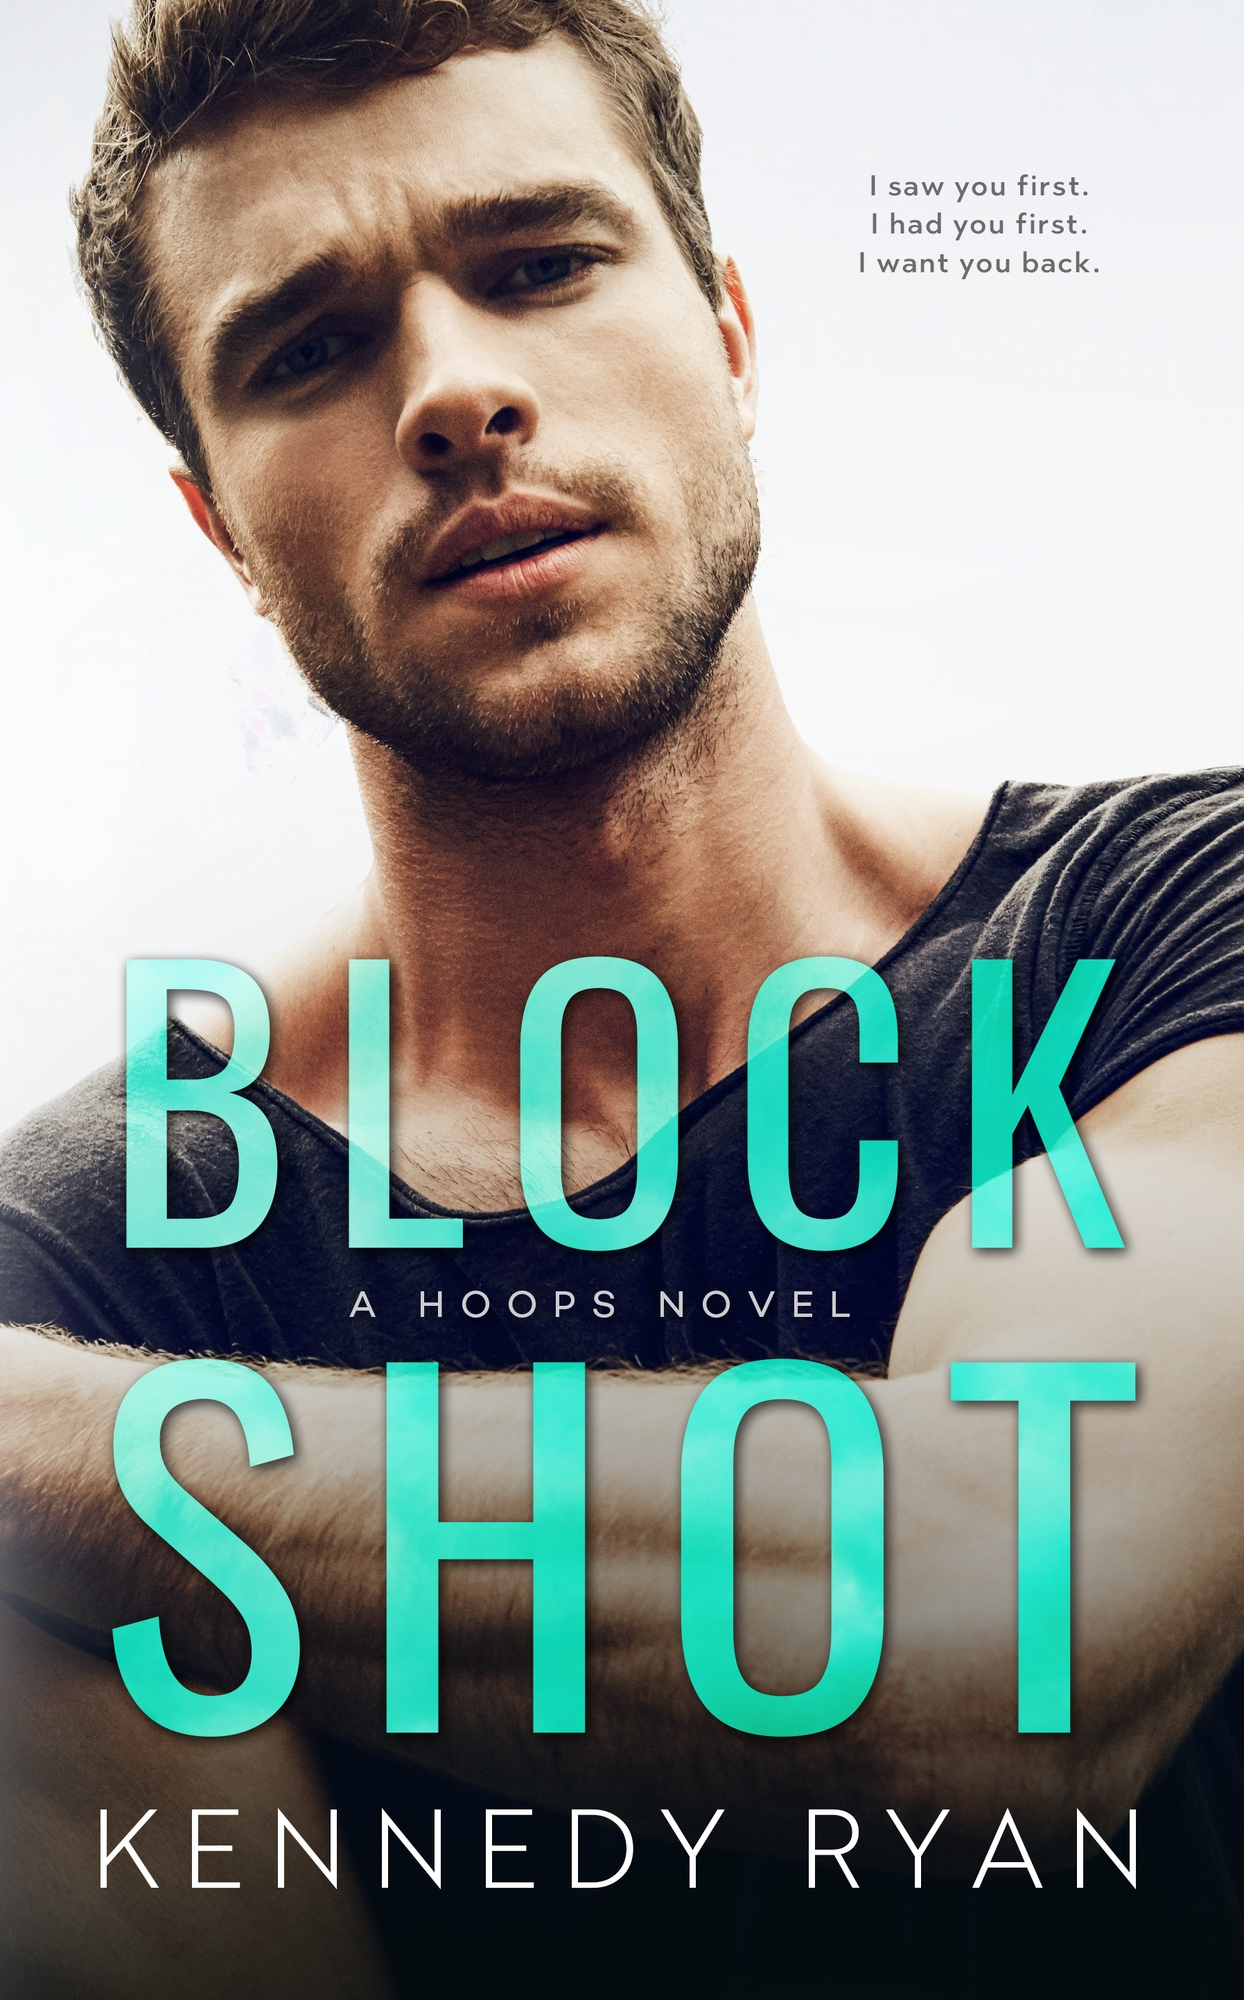 Block Shot by Kennedy Ryan [Blog Tour]